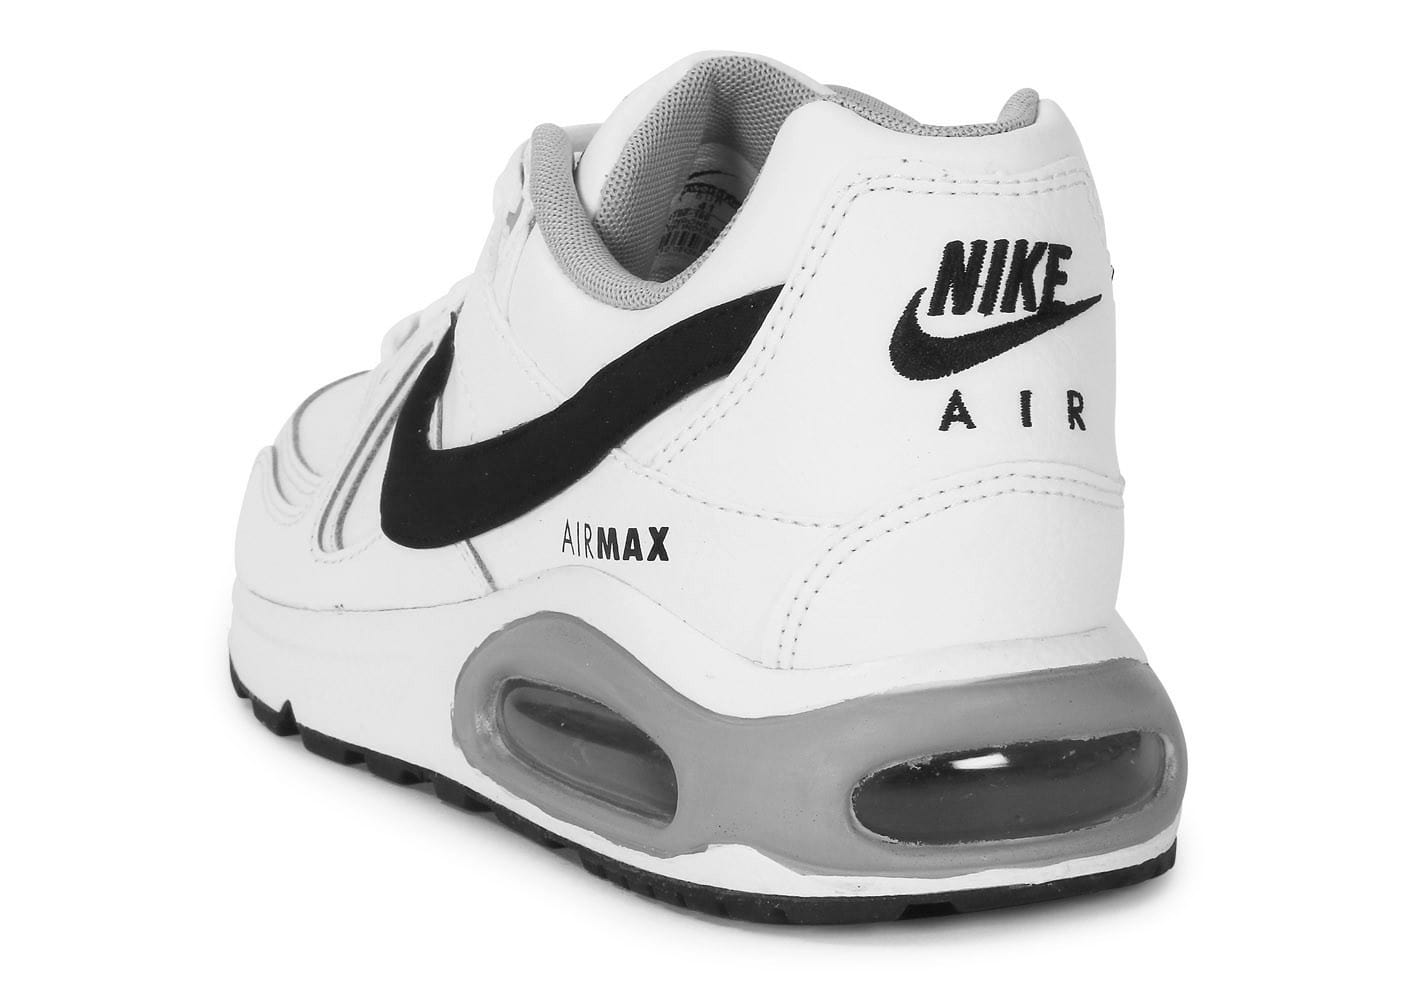 nike air max command blanche et noire chaussures homme chausport. Black Bedroom Furniture Sets. Home Design Ideas